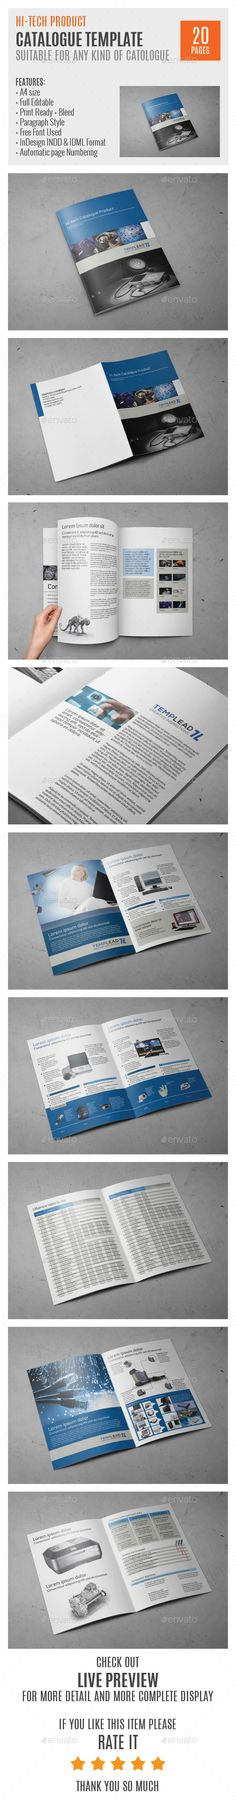 Hi-Tech Products A4 InDesign Catalog Template. Download: http://graphicriver.net/item/hitech-products-a4-indesign-catalog-template/9725562?ref=ksioks